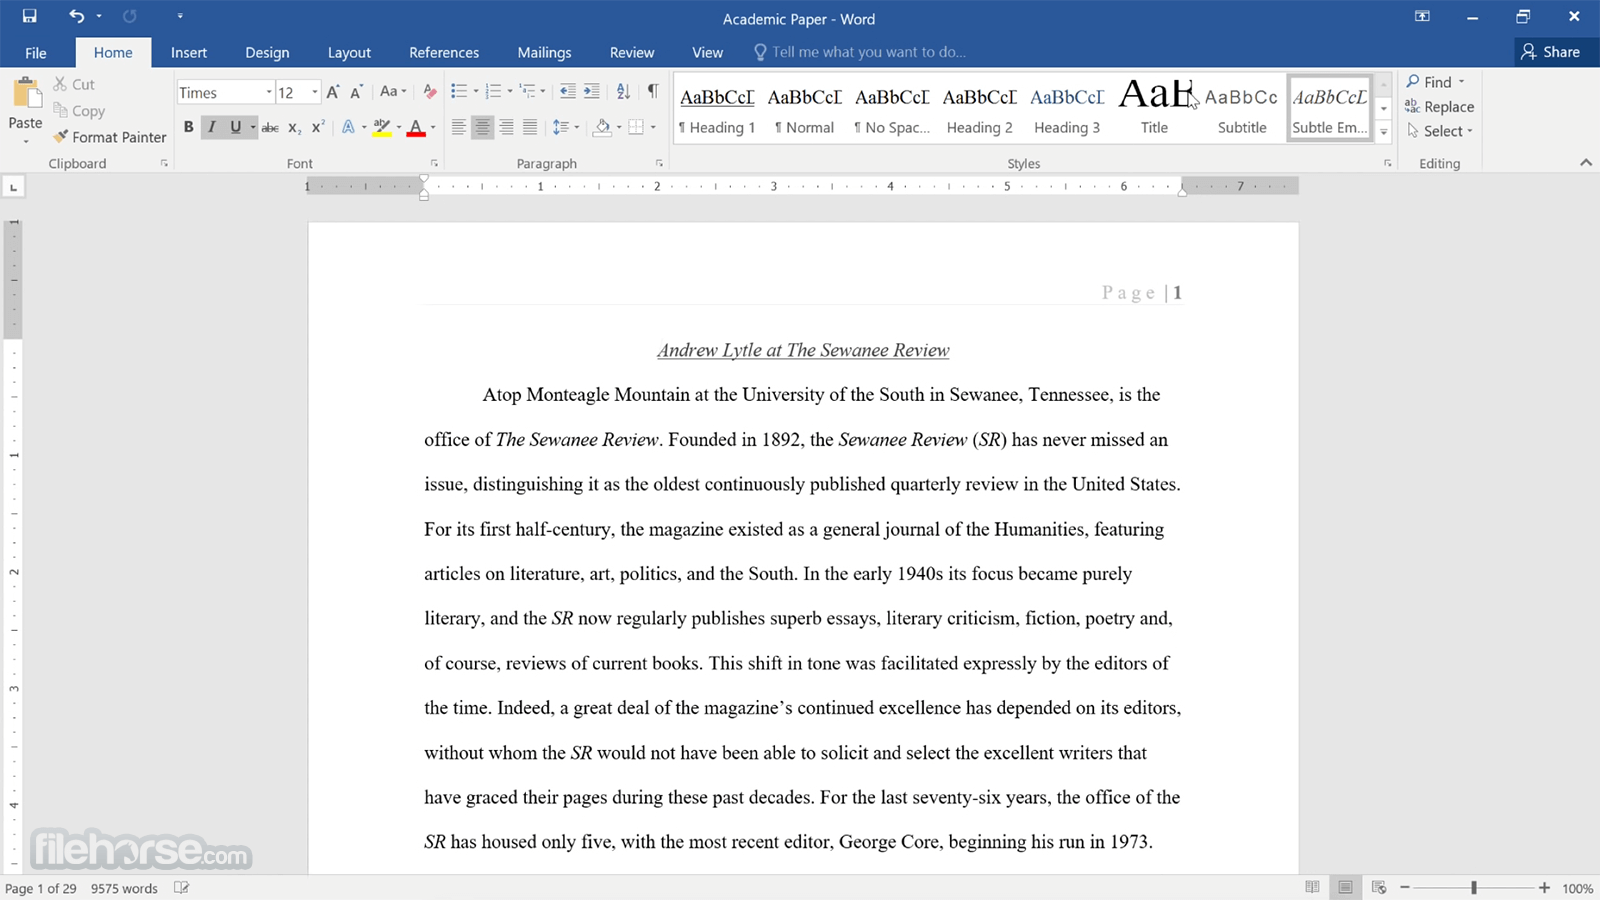 microsoft office word 2010 for windows 8 free download